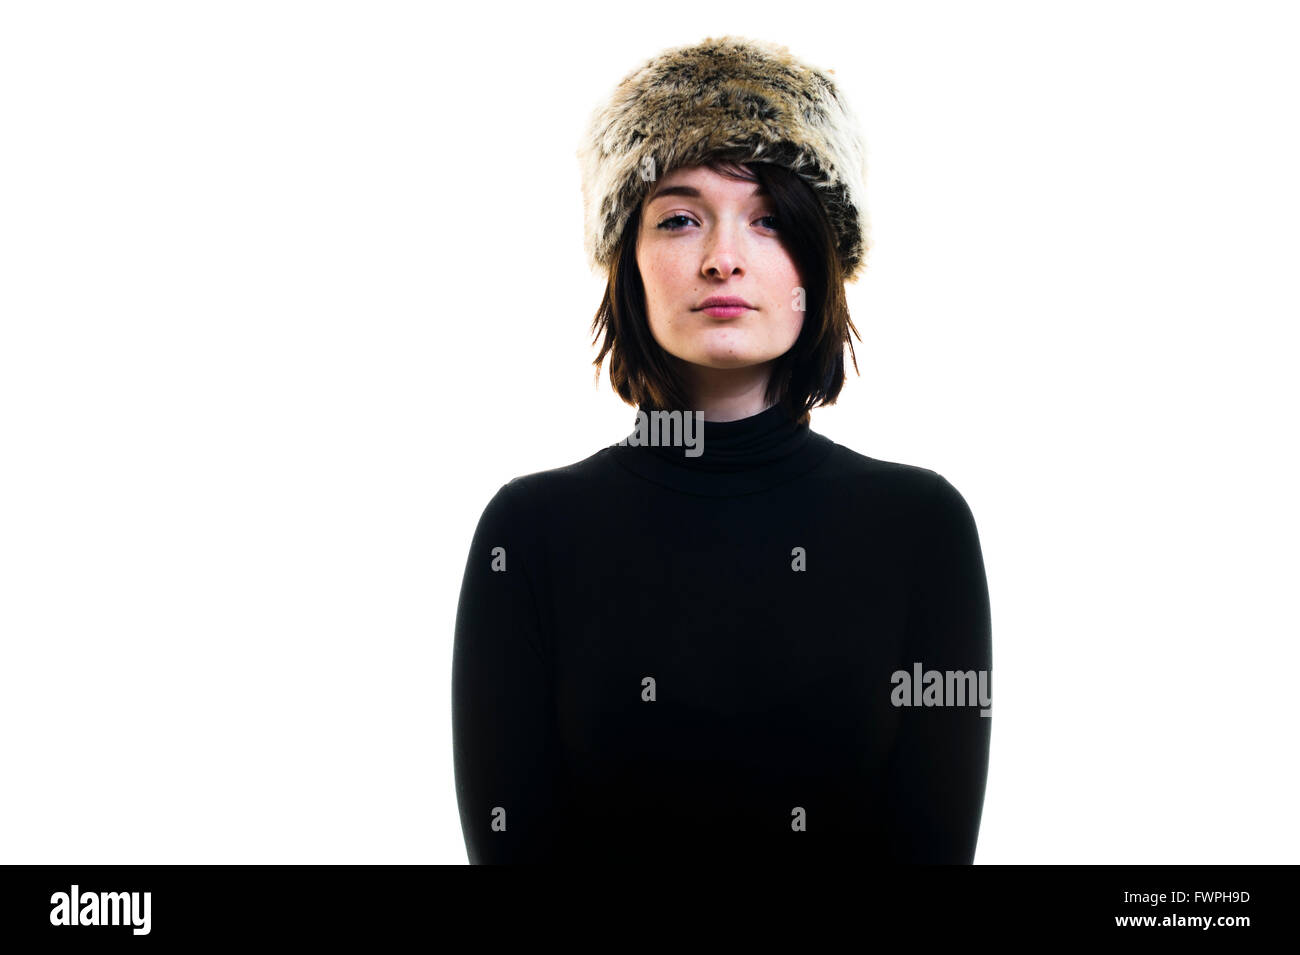 Haughtiness: A young person, woman girl, late teens early twenties, slim, brown hair, wearing a fur hat, looking - Stock Image